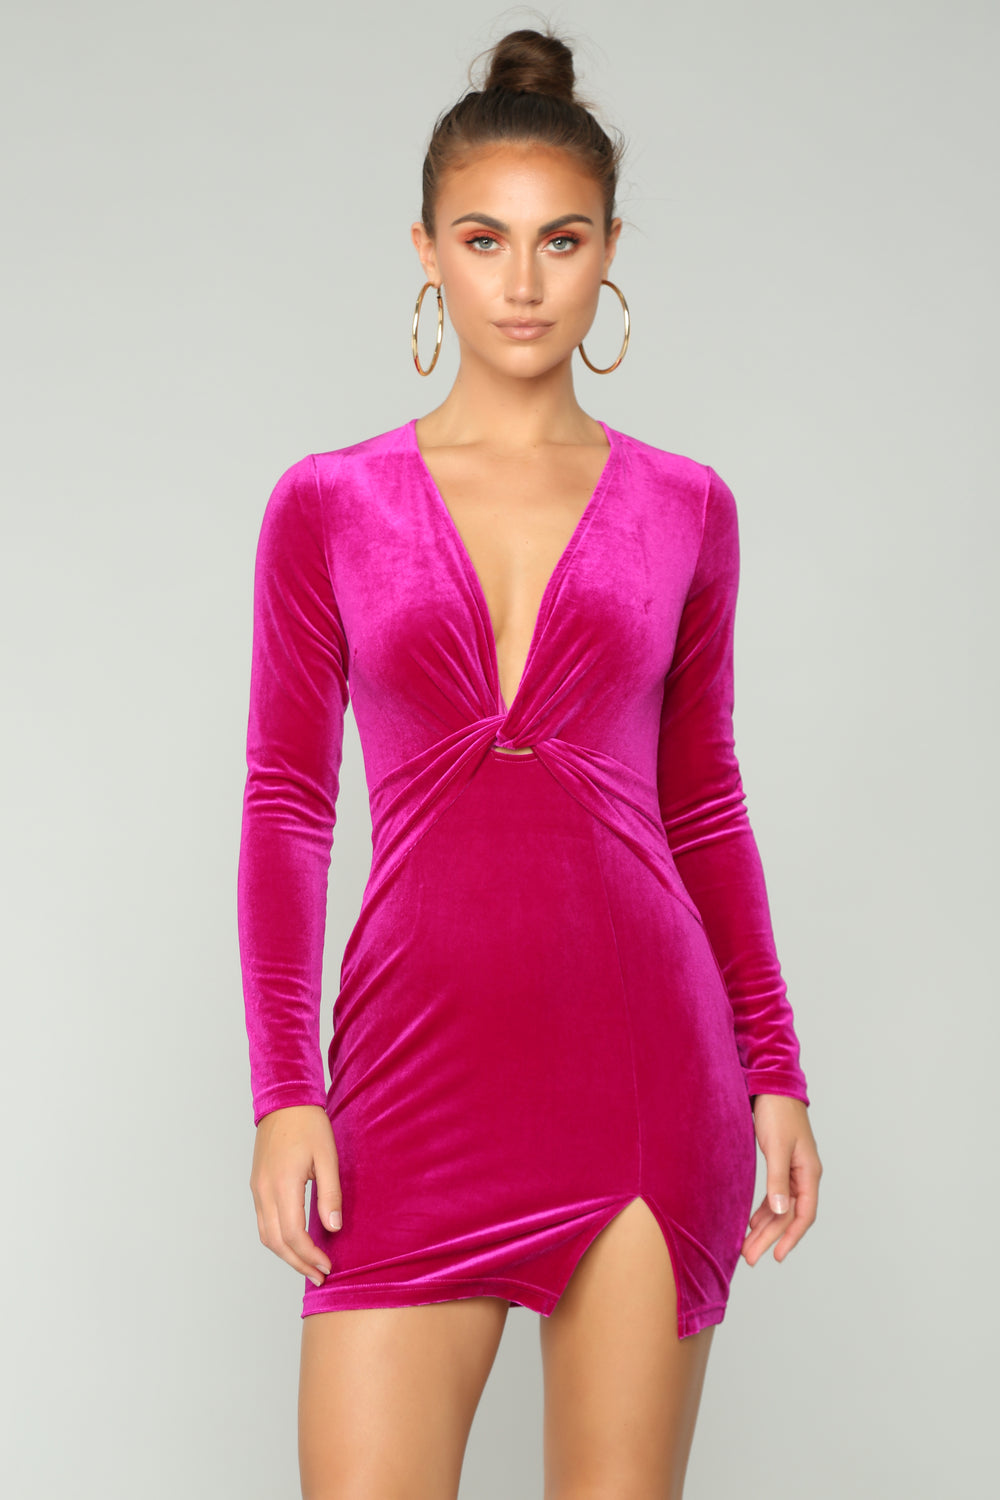 Knot Without You Velvet Dress - Plum